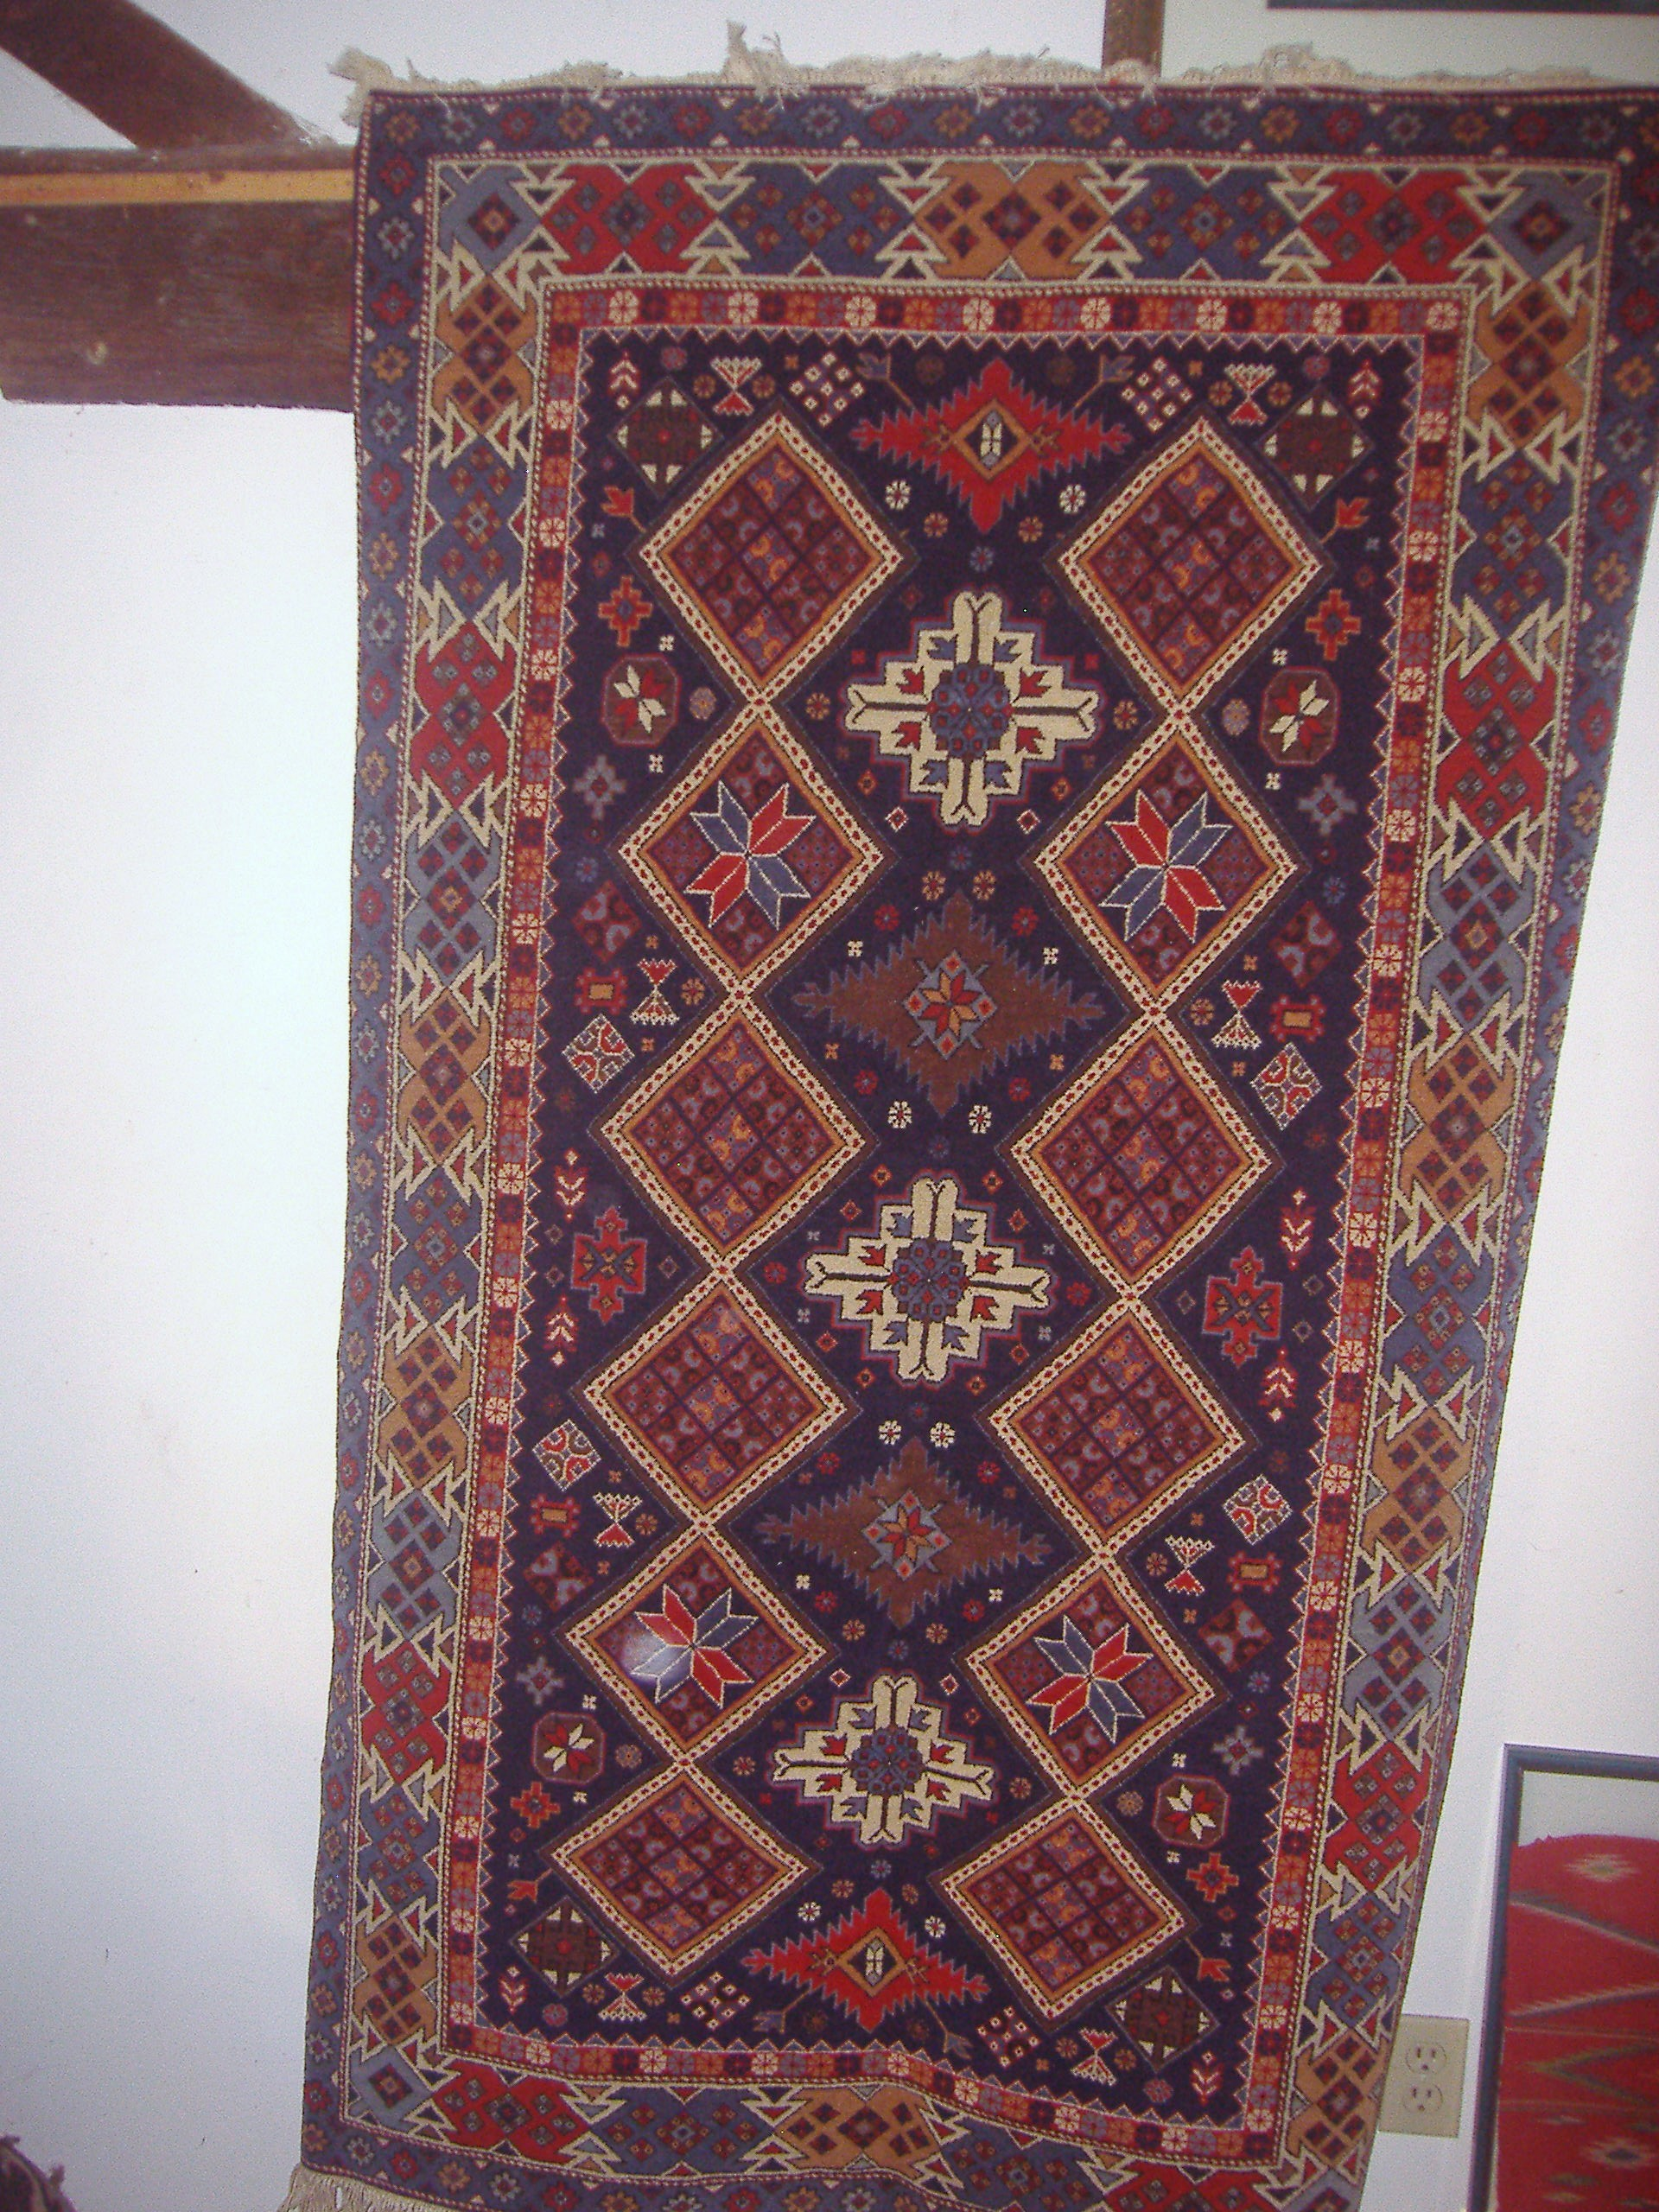 carpets how was ft rug this christie oriental to a east s on designs features carpet cm in for and southeast pictorial south offered x kirman rugs read piece persia sale circa